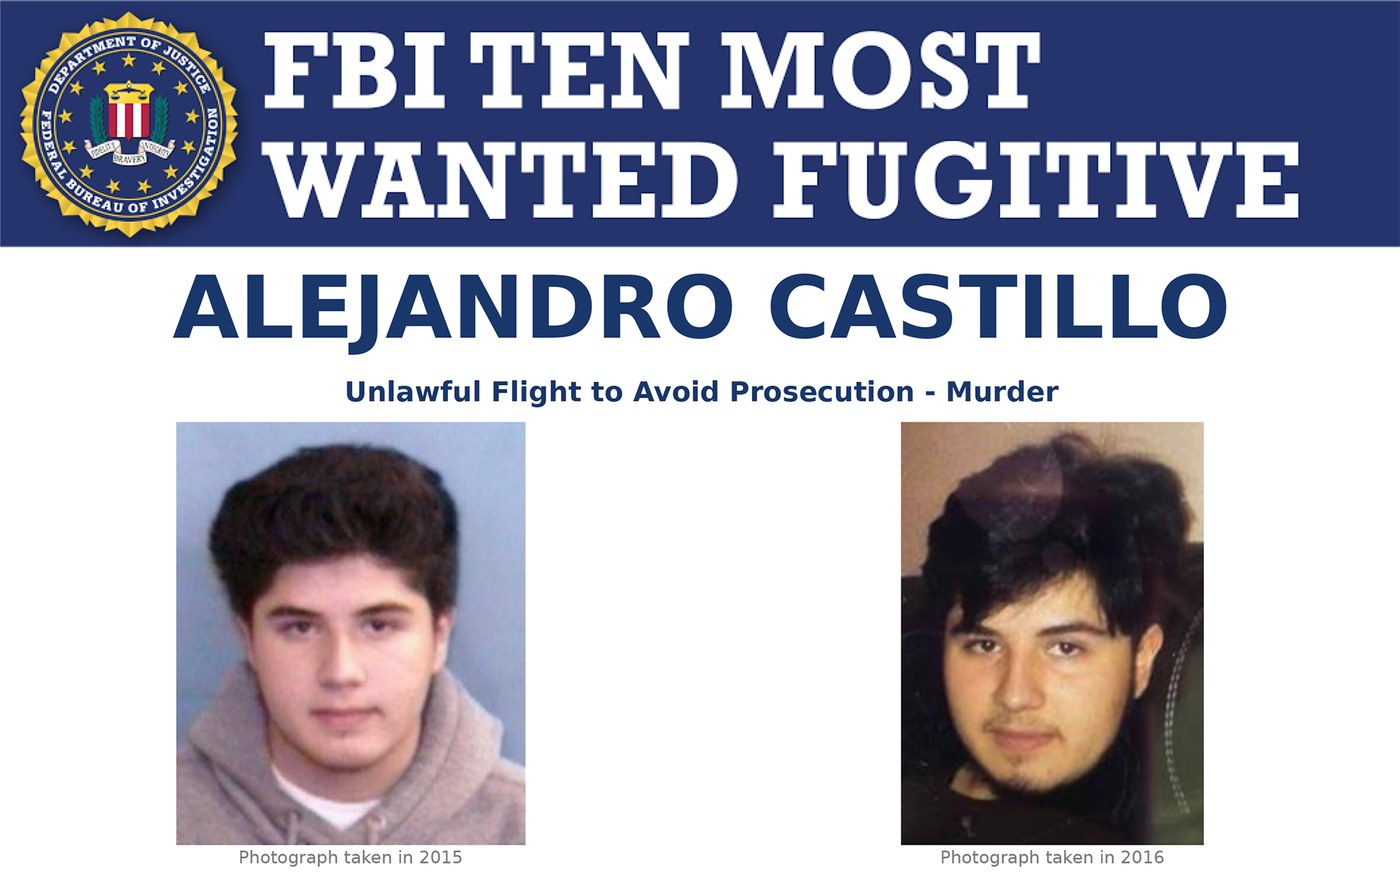 Fbi Most Wanted Poster Template from eparisextra.com